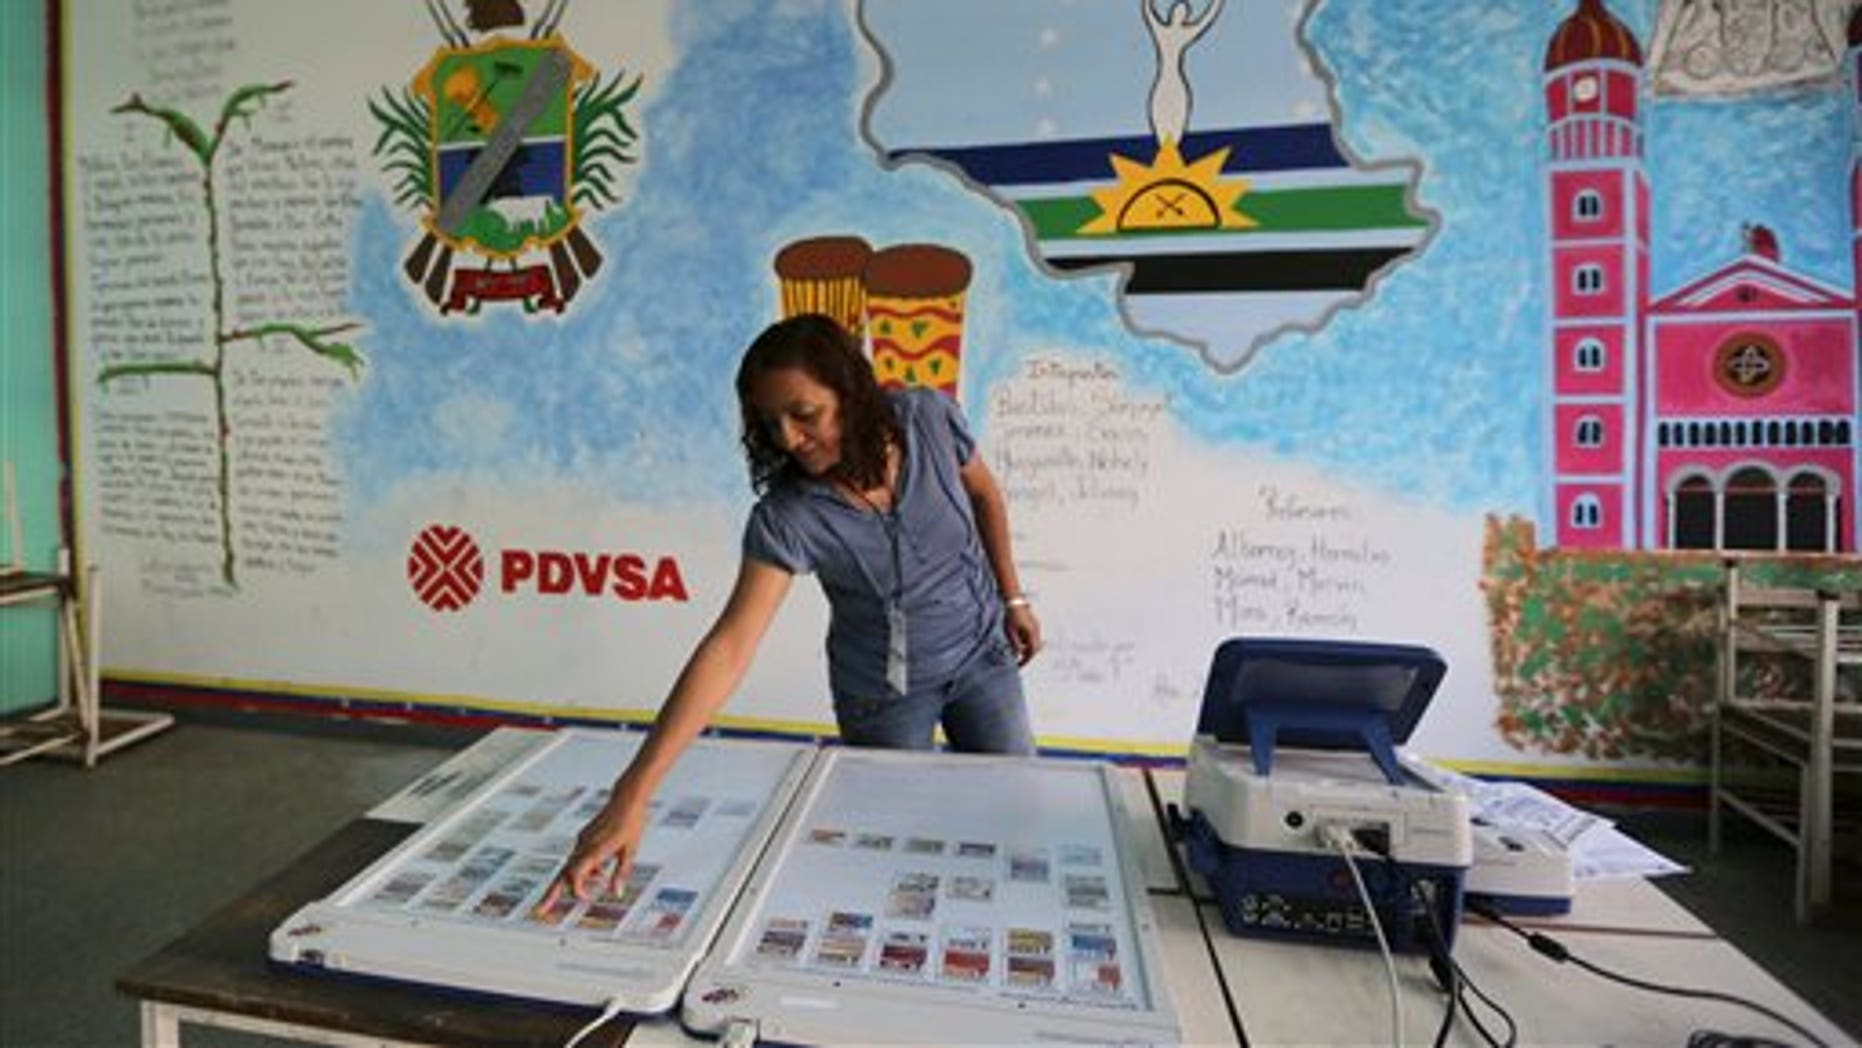 A member of the Venezuelan National Electoral Council tests a voting machine at a polling station in Caracas, Venezuela, Friday, Dec. 6, 2013. Venezuelans will vote in nationwide municipal elections Sunday. (AP Photo/Fernando Llano)